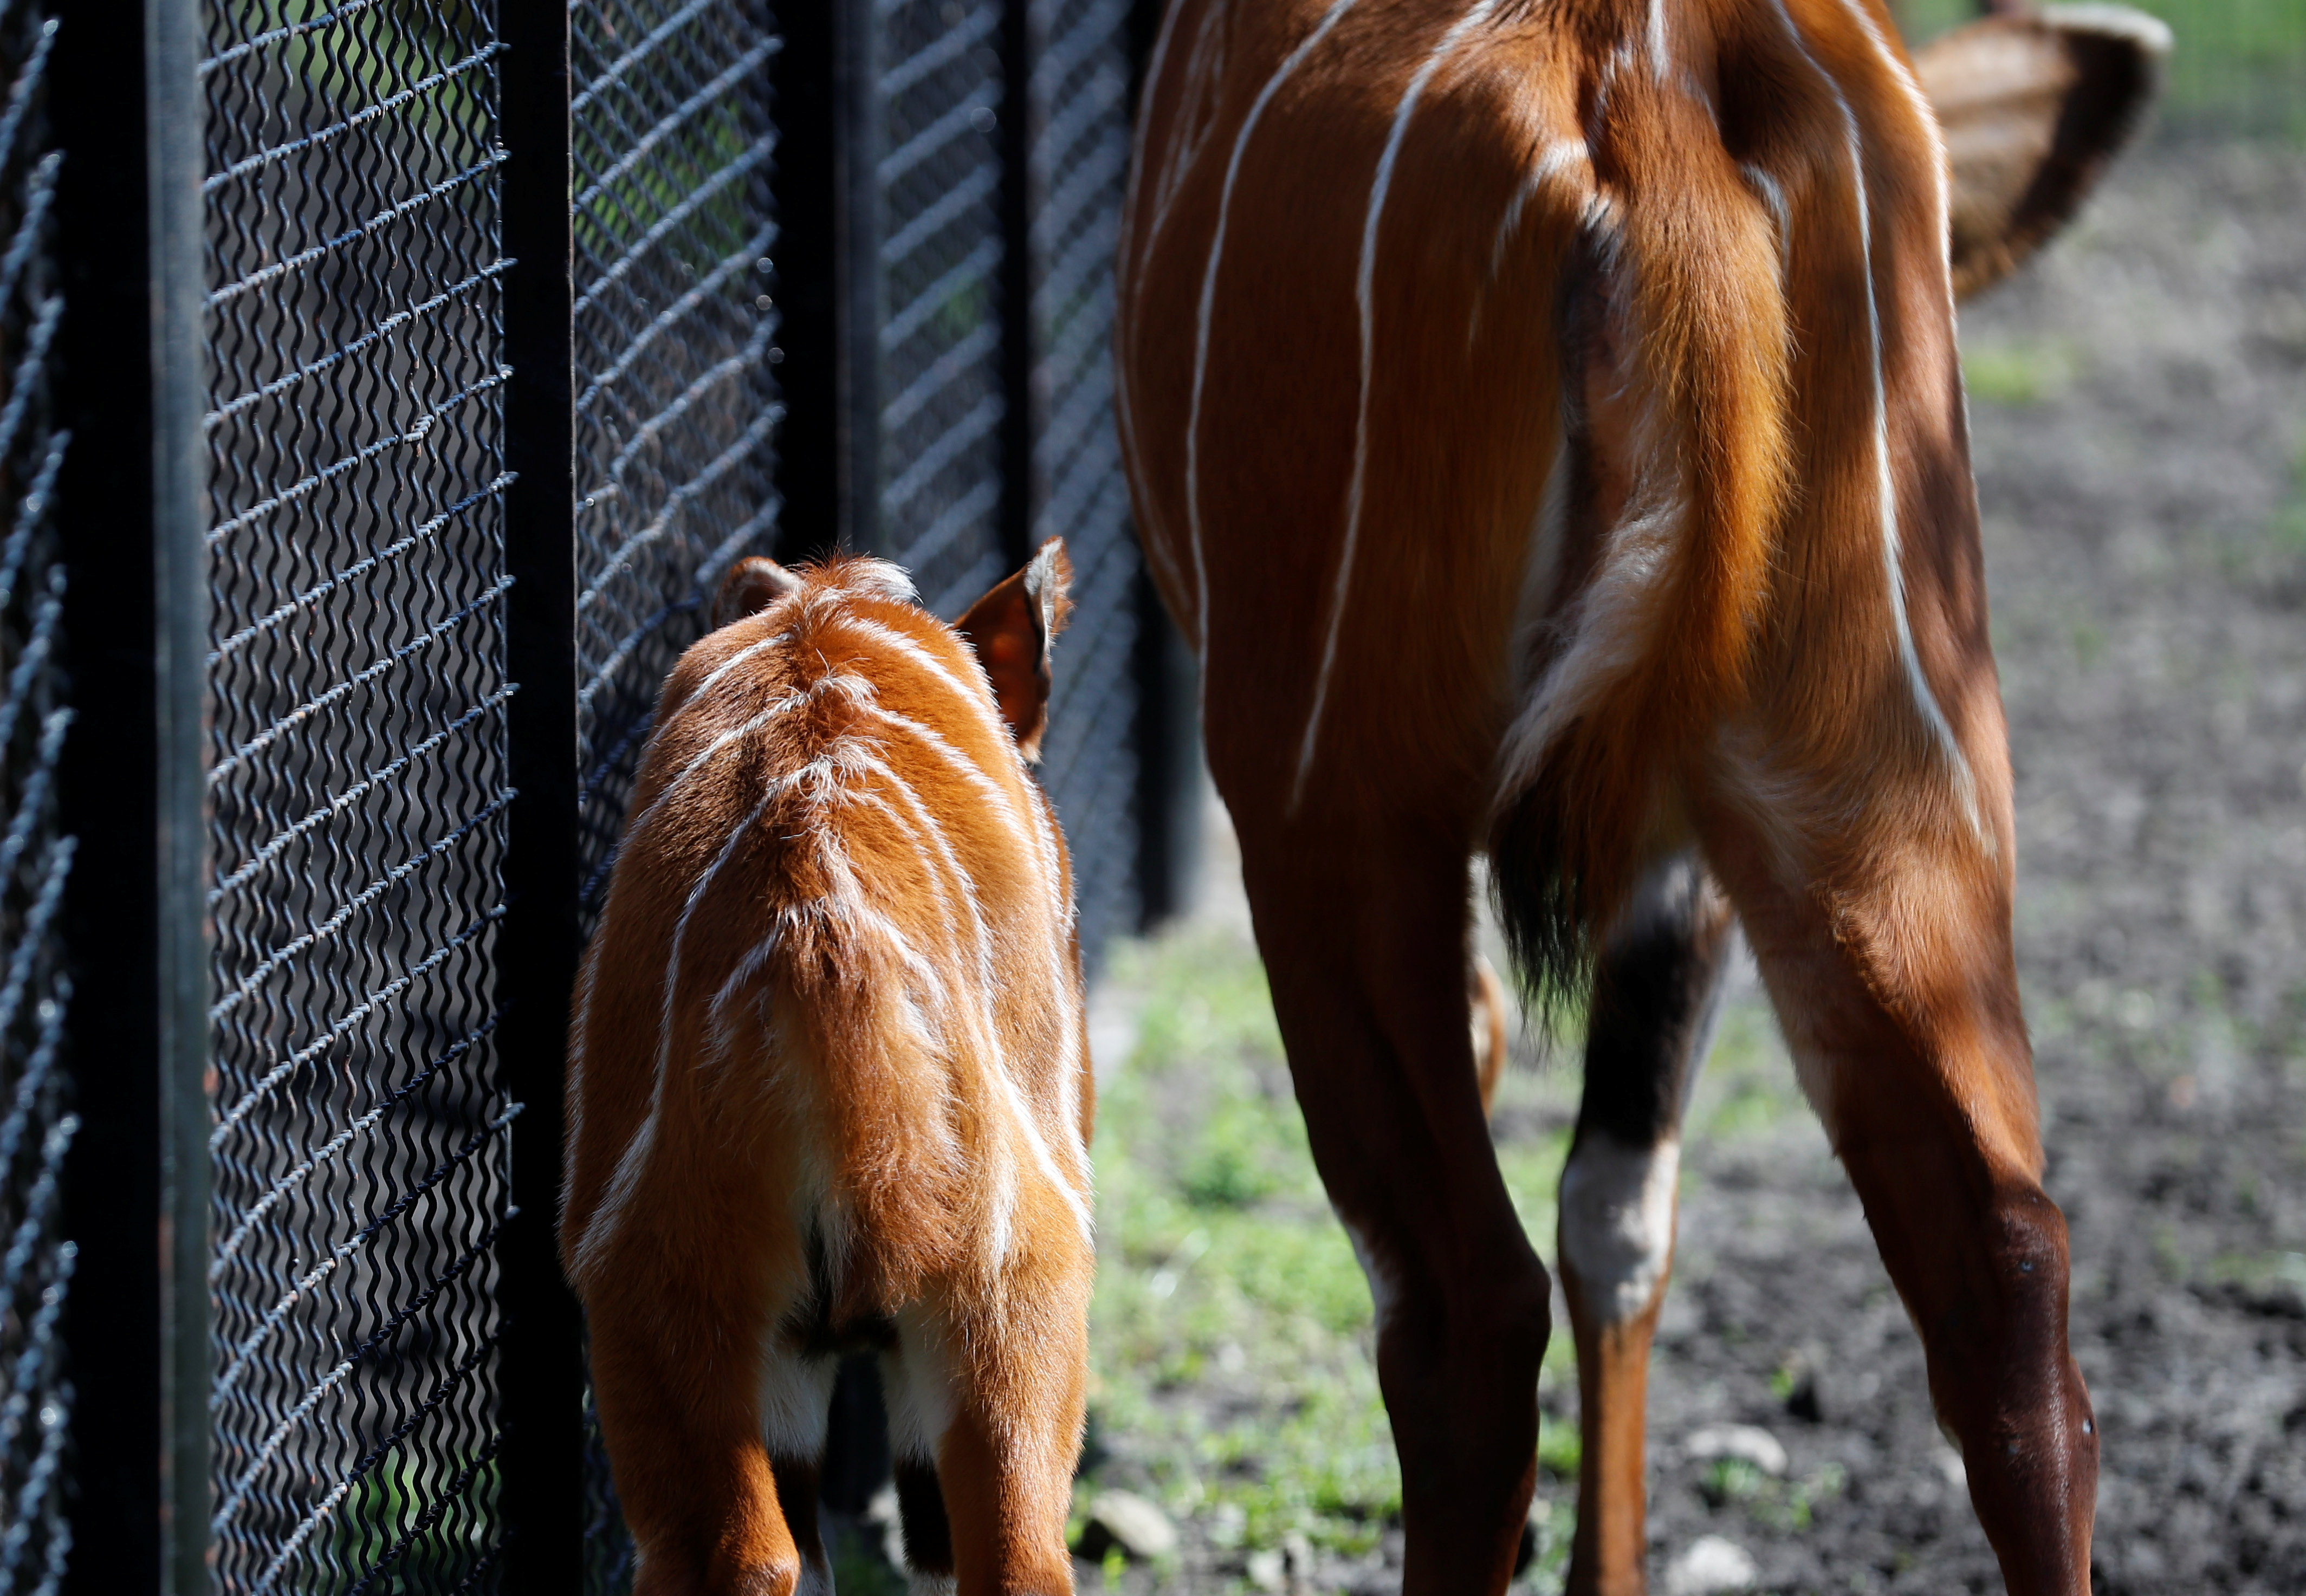 A newborn mountain bongo, the largest of African forest antelopes, is seen in the Warsaw Zoo, Poland May 6, 2021. Picture taken May 6, 2021. REUTERS/Kacper Pempel